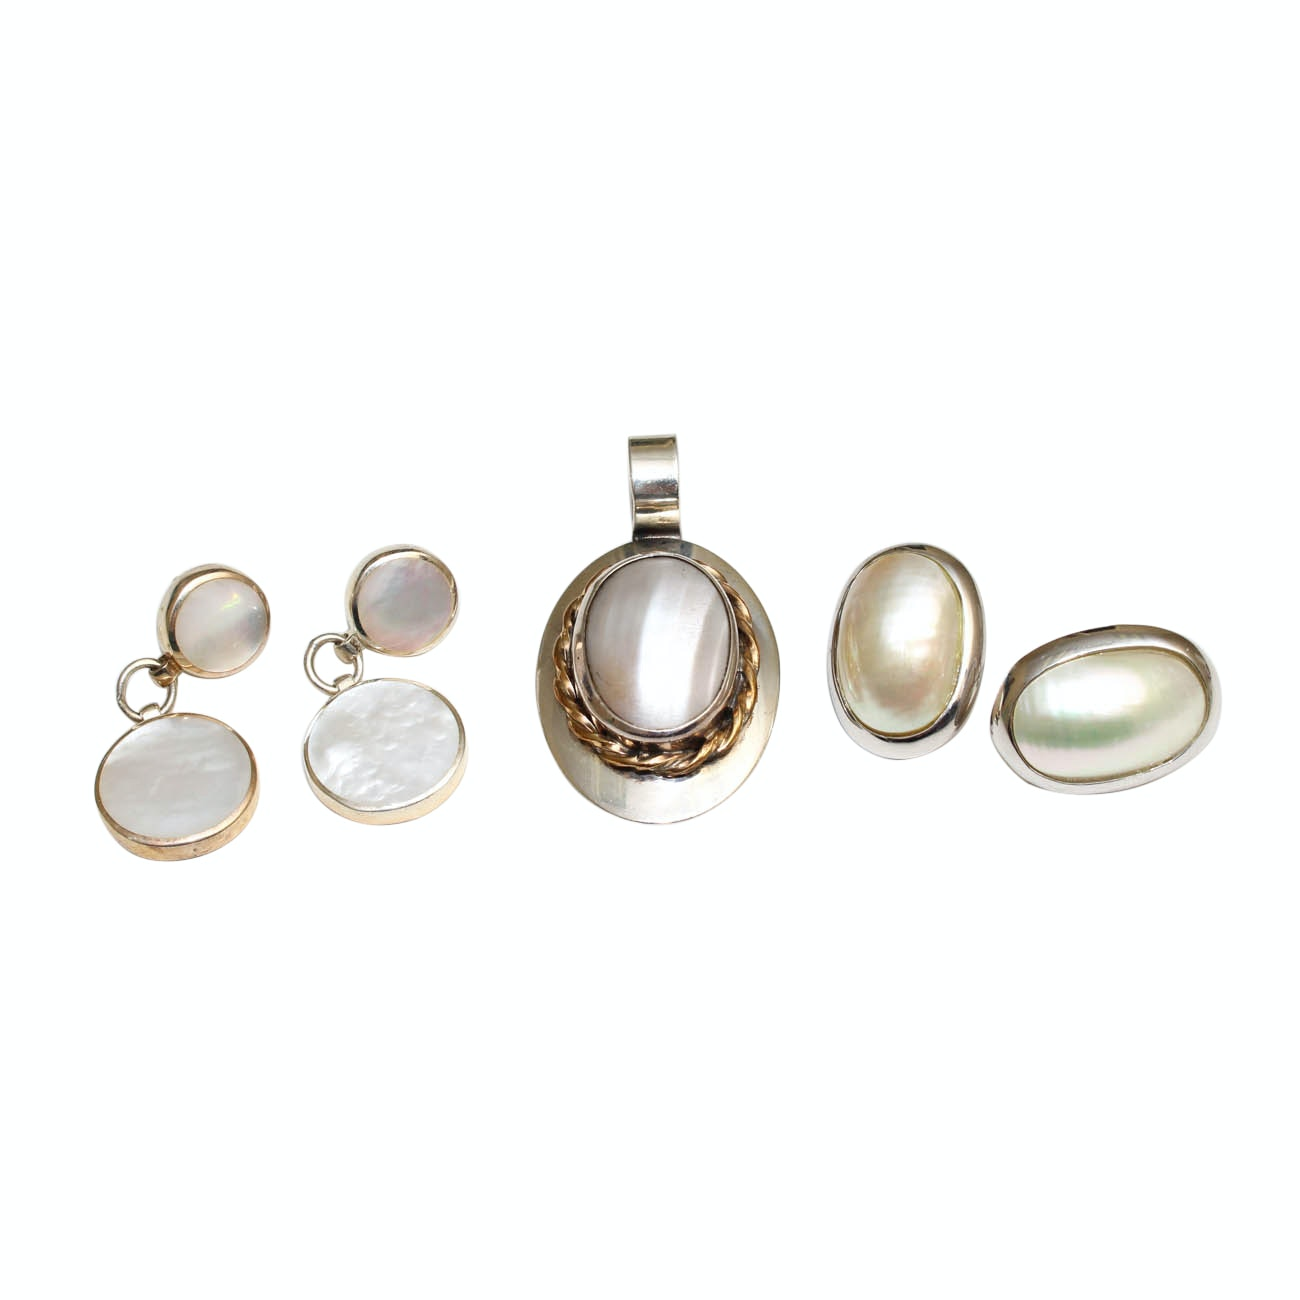 Sterling Silver, Mother of Pearl, and Shell Jewelry